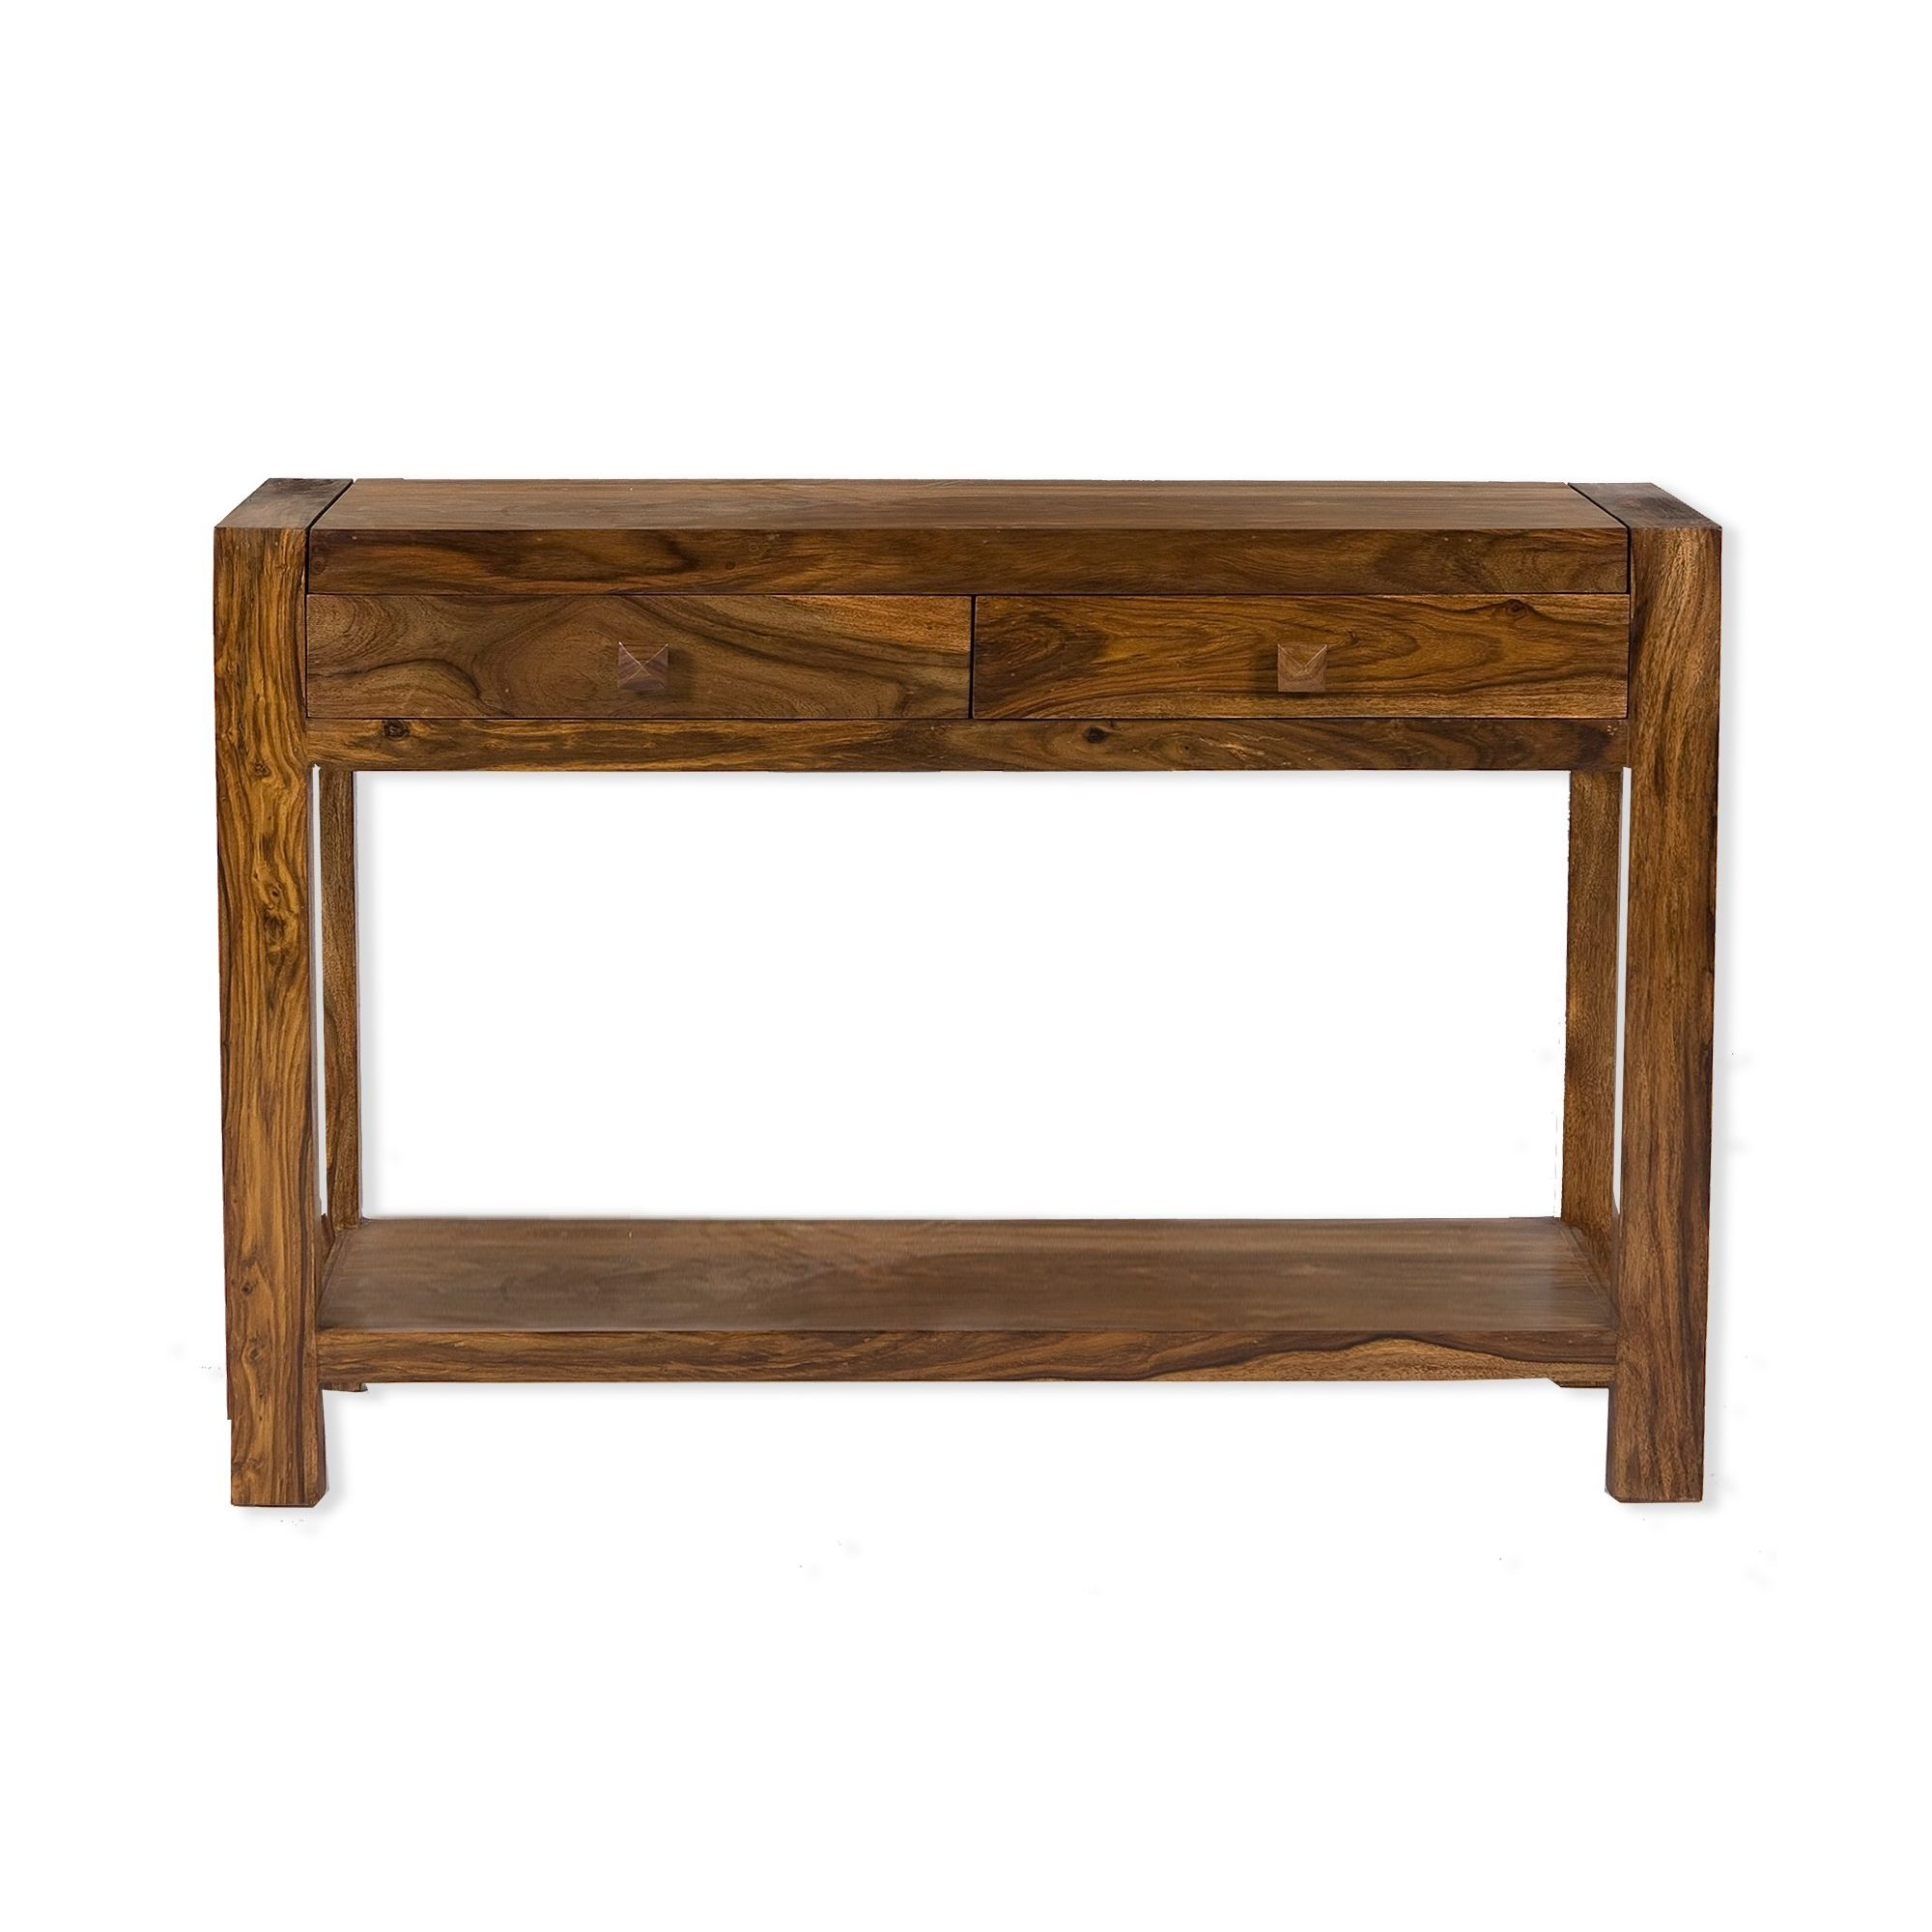 Elements Block Console Table in Warm Lacquer at Tesco Direct